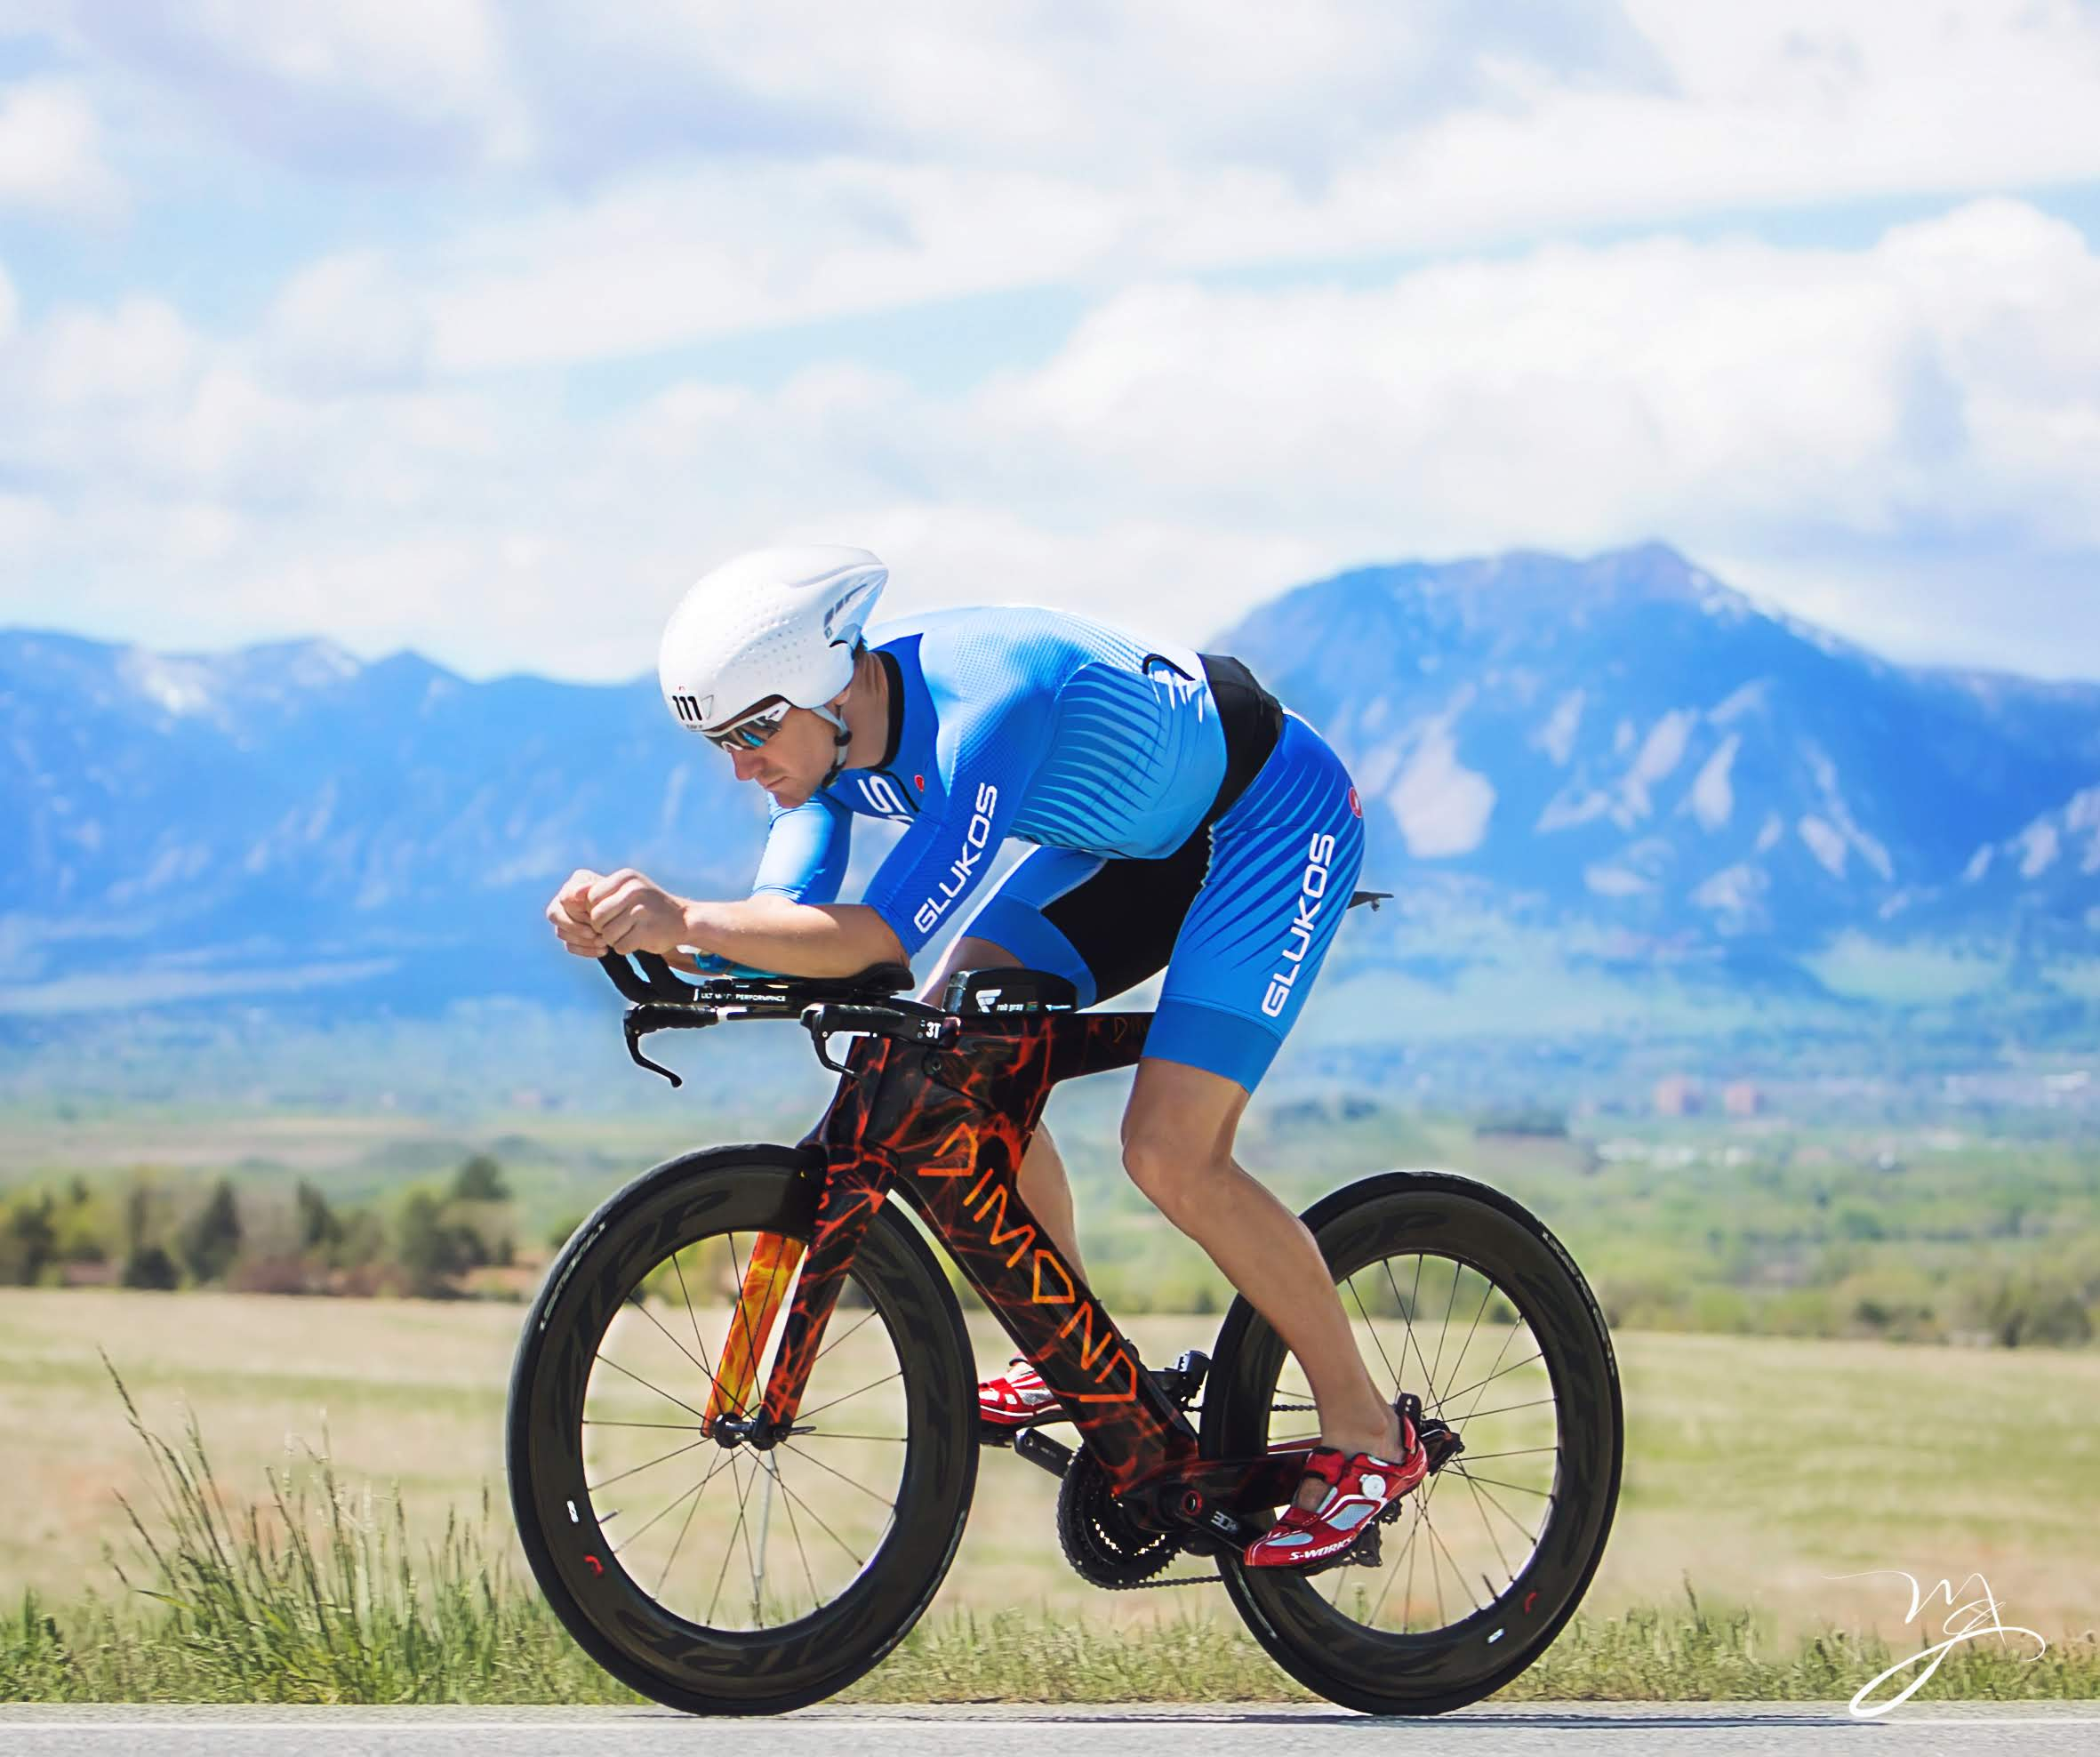 Riding in Boulder